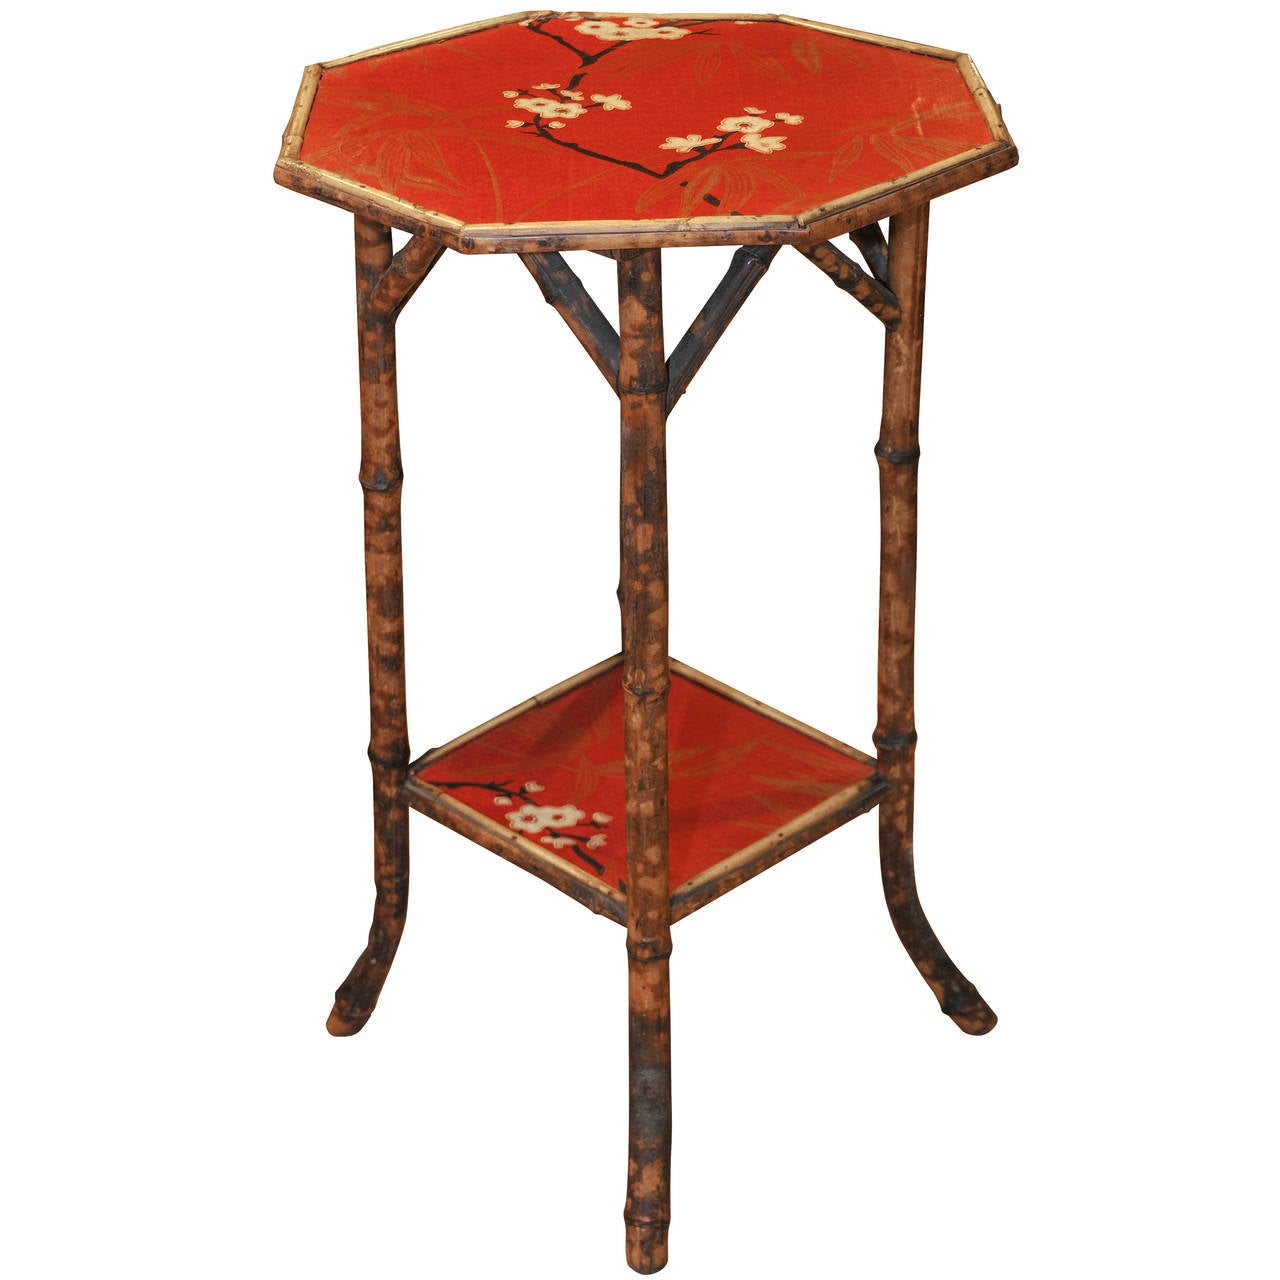 Antique bamboo side table at 1stdibs for Bamboo side table